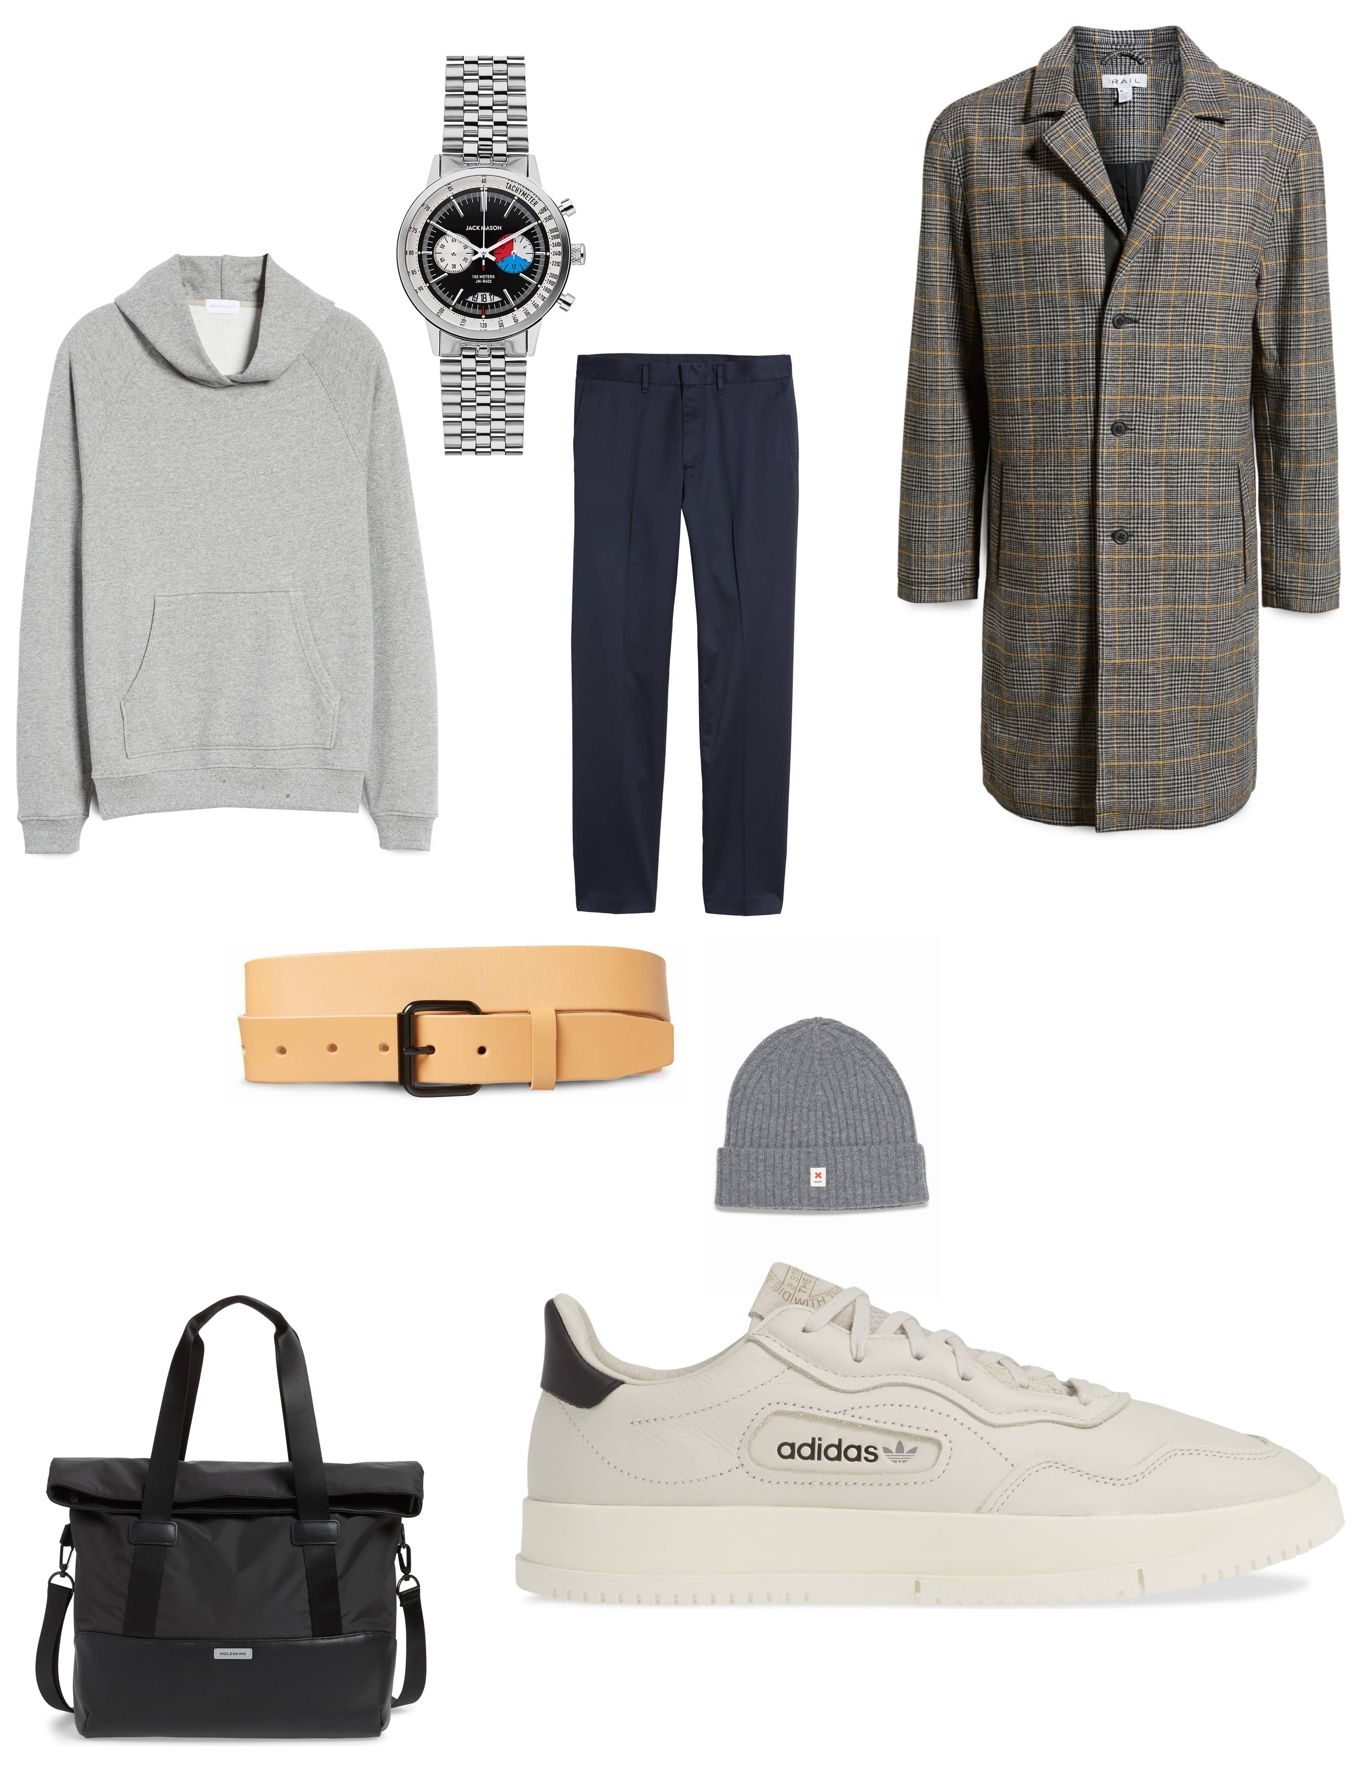 Stylish cool work outfit inspiration